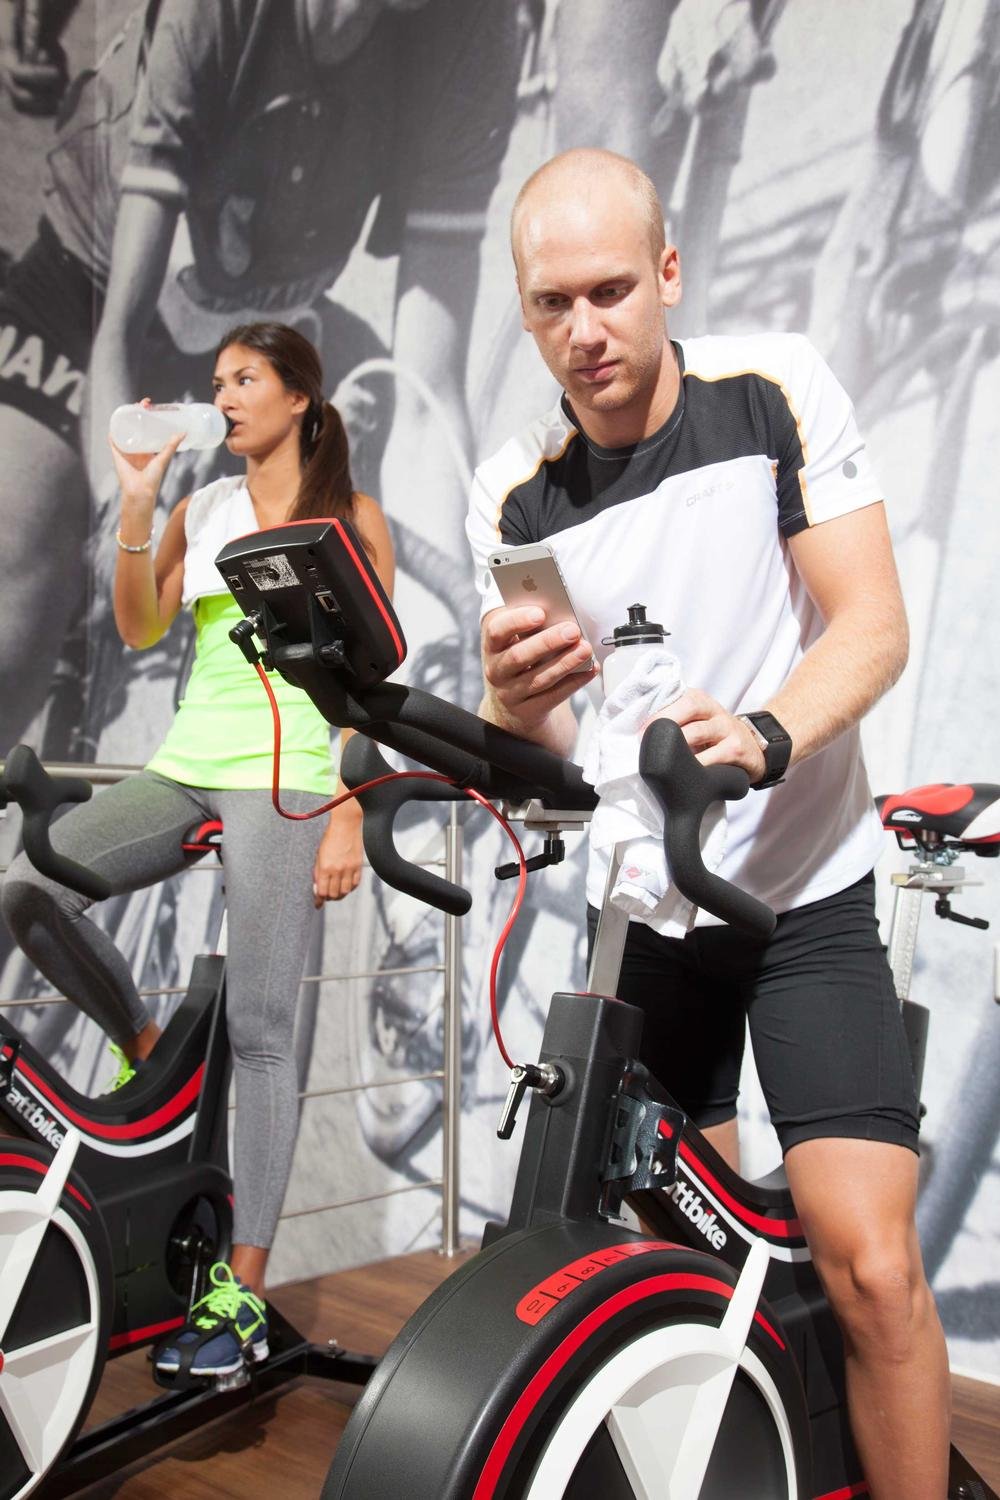 The Wattbike found in gyms is the same model used by elite athletes